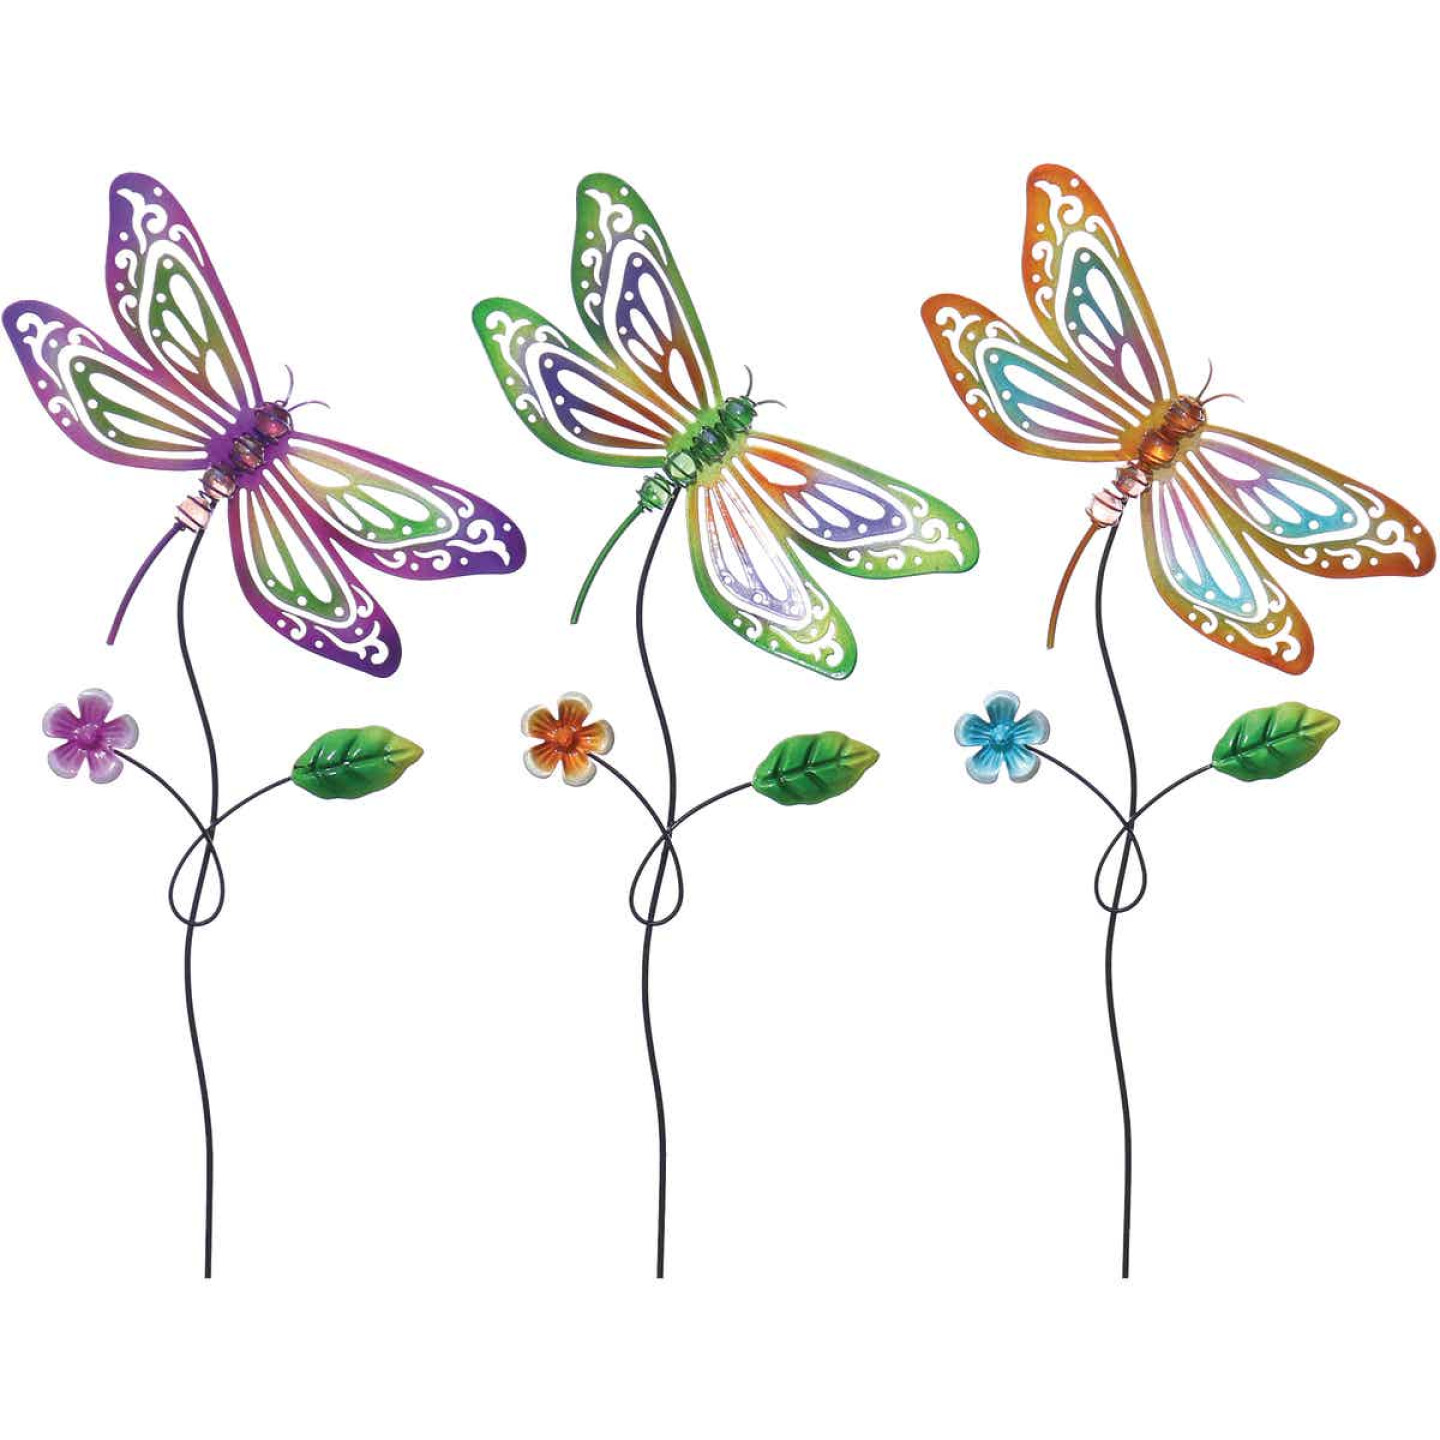 Alpine 24 In. H. Metal Dragonfly Garden Stake Lawn Ornament Image 1